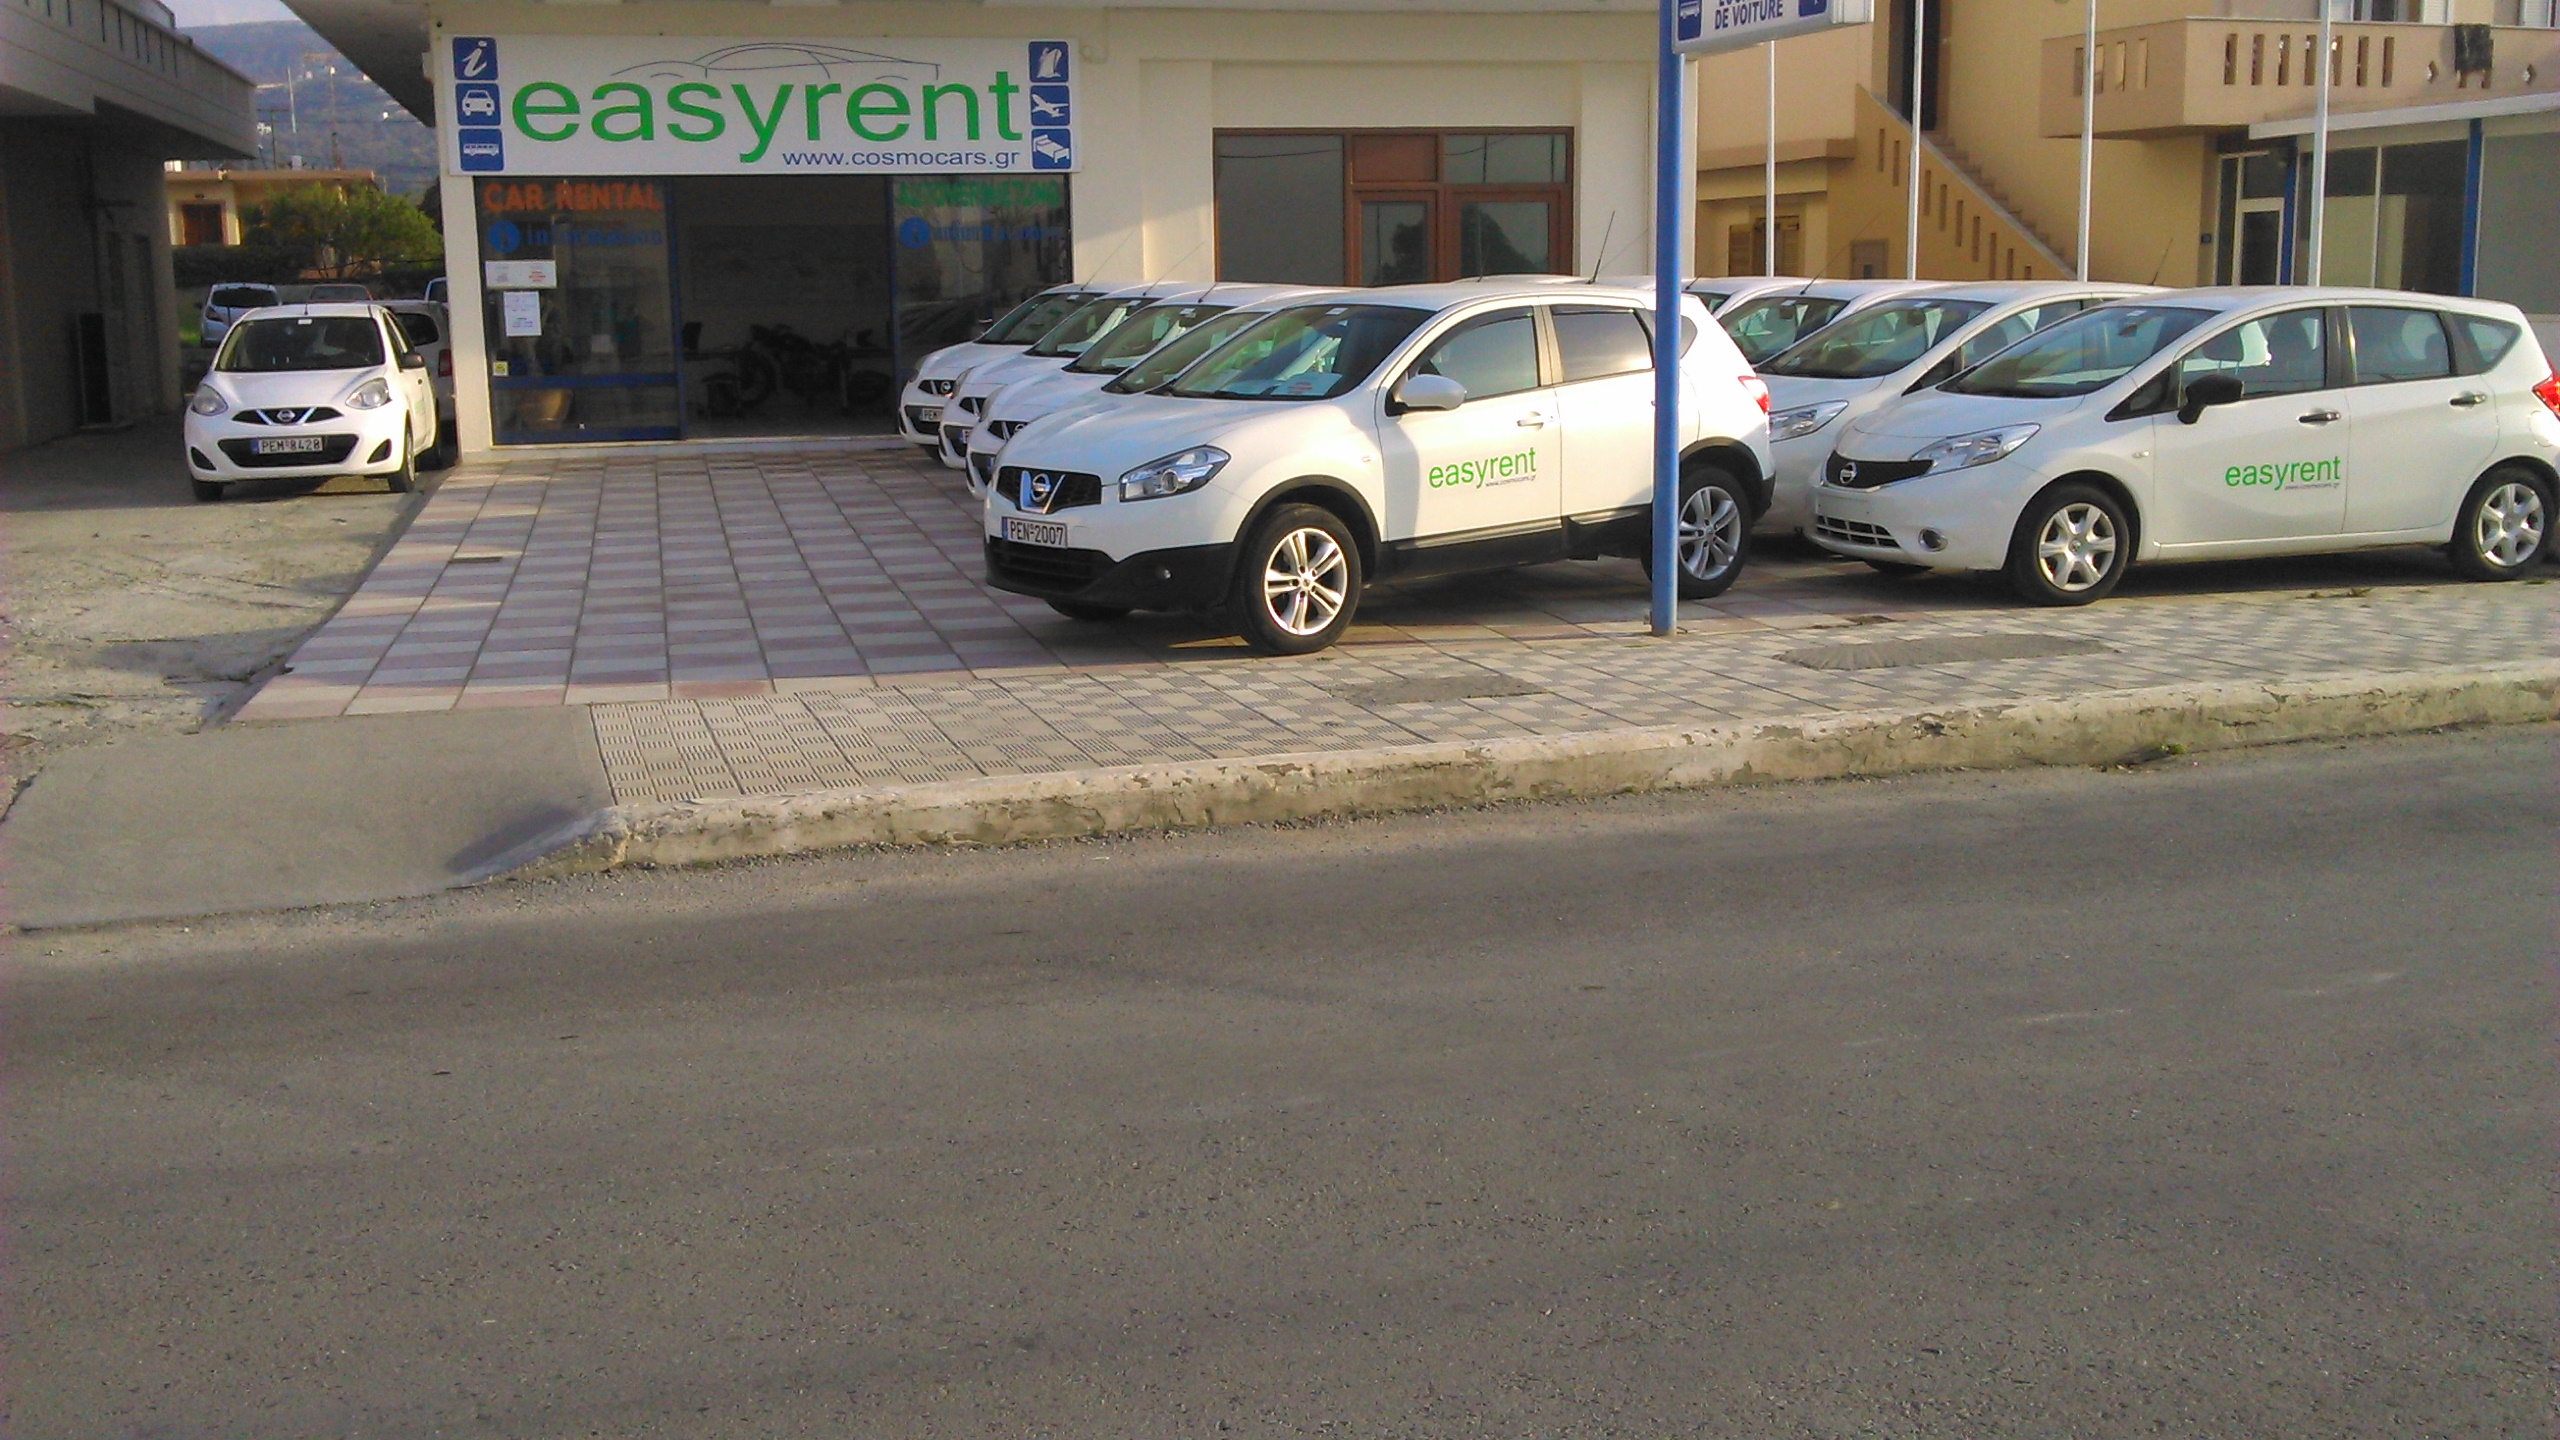 Easyrent Com Car Hire